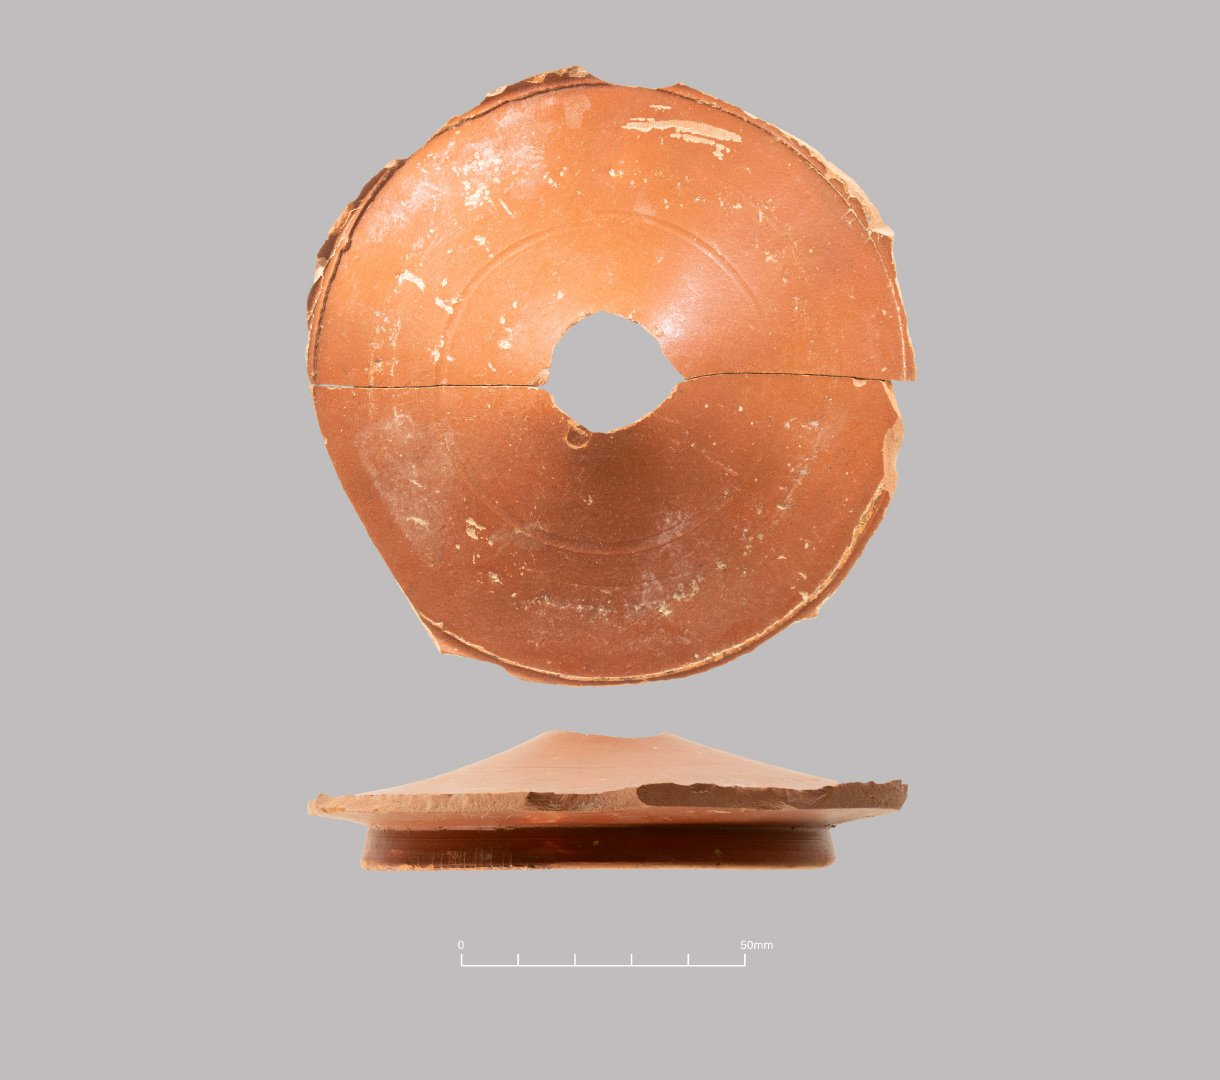 Central Gaulish Samian ware dish from cremation burial. Base has been deliberately perforated before burial. Middle Roman (c. 150-200 AD)